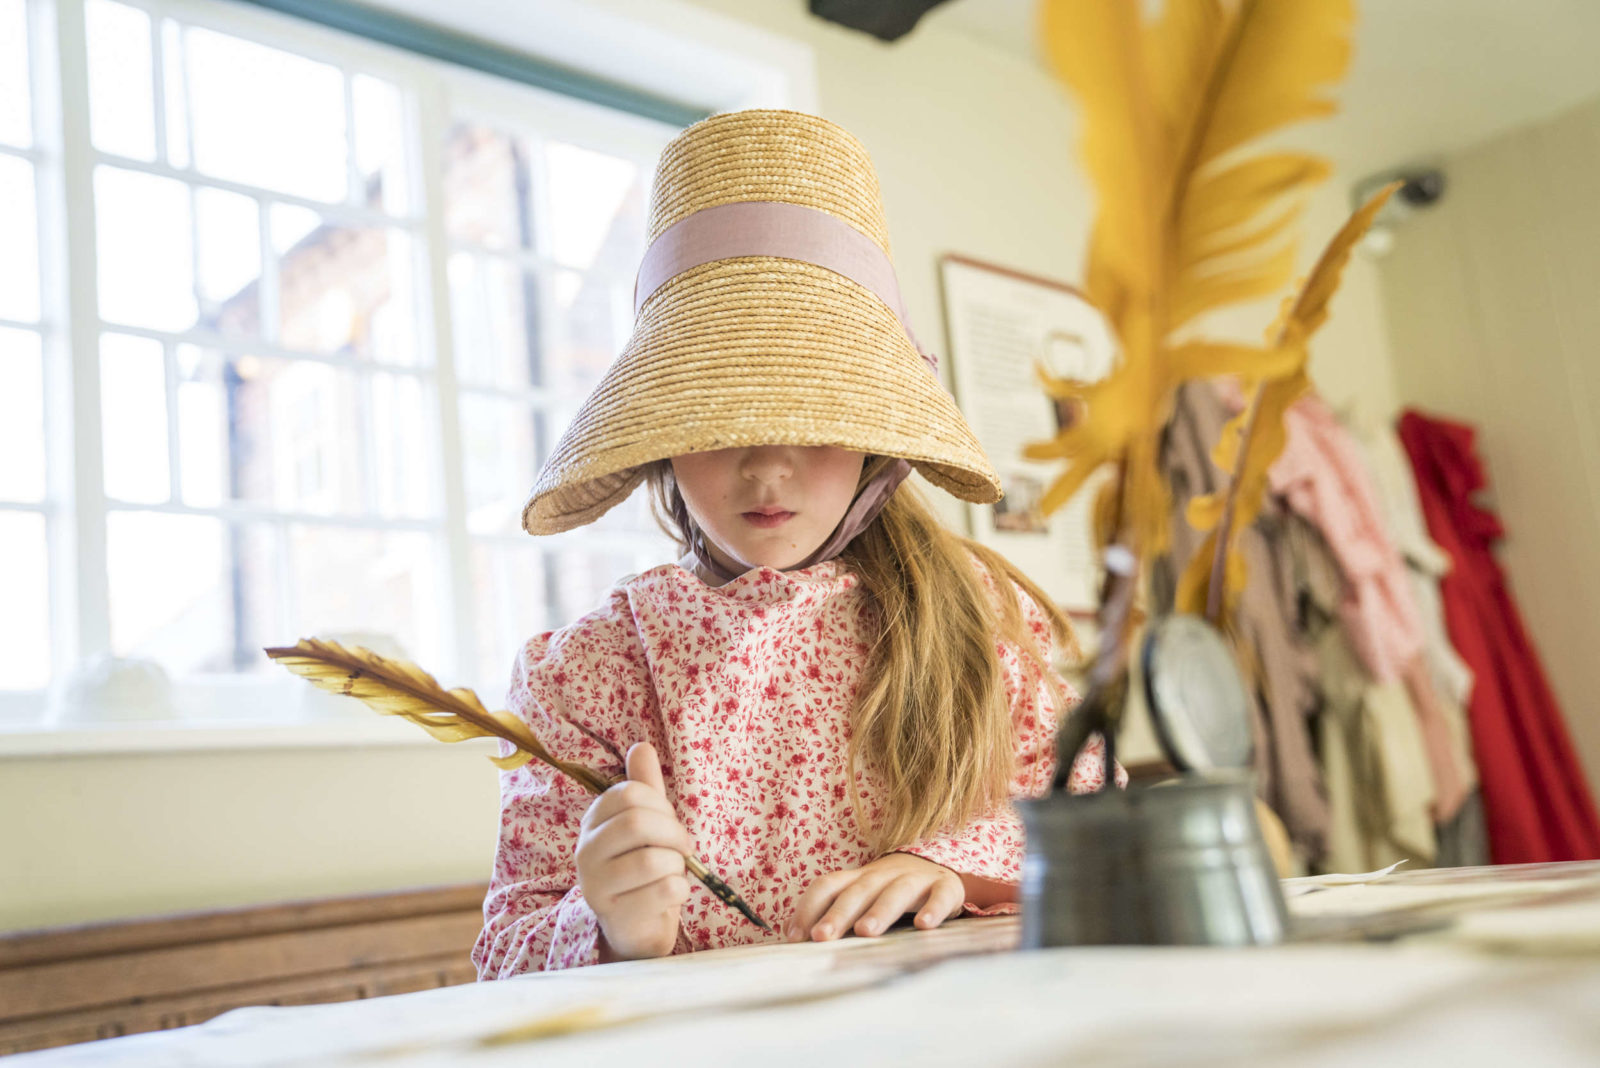 A young girl in a bonnet writing with a quill pen at Jane Austen's House